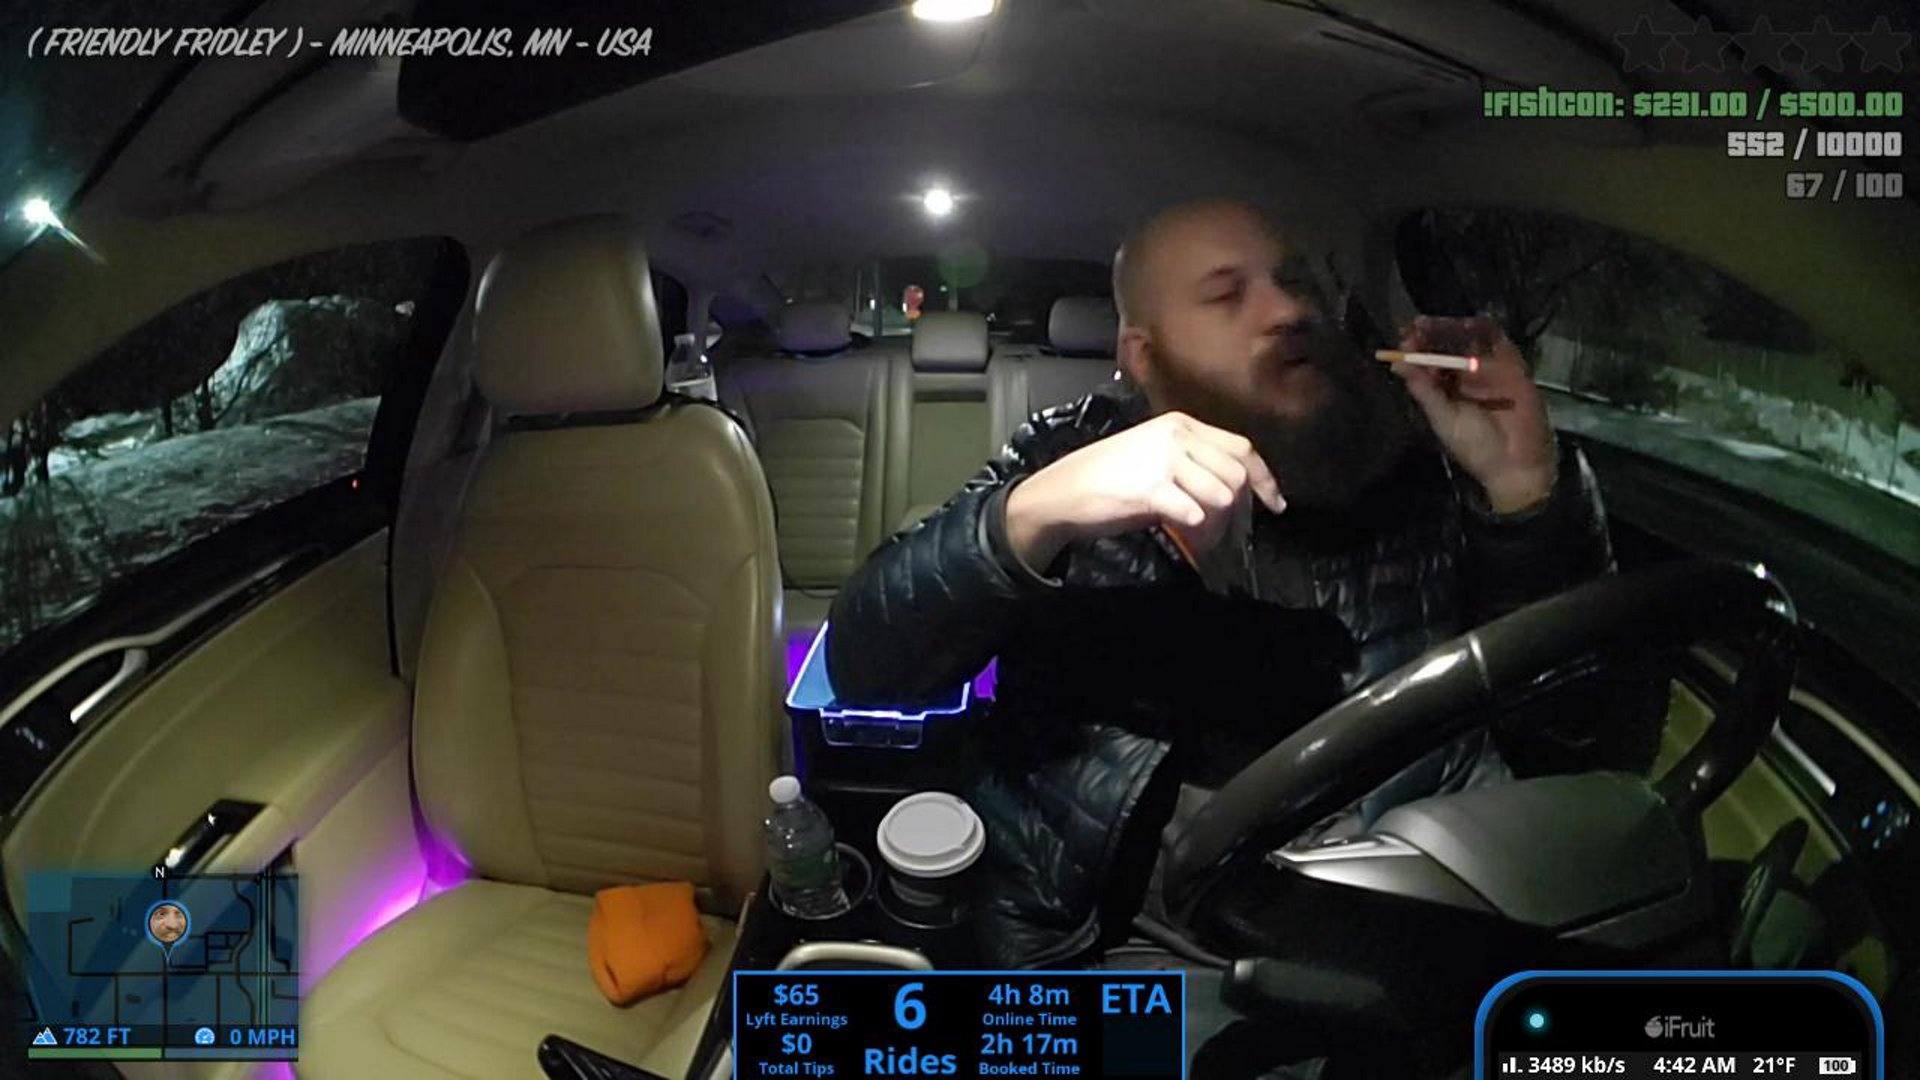 rideshare-roadcam-pov-mn-usa-fishcon-plunges-help-travel-outdoors-0600-https-t-co-k7fntbq7xy-https-t-co-jjunrkr6pu